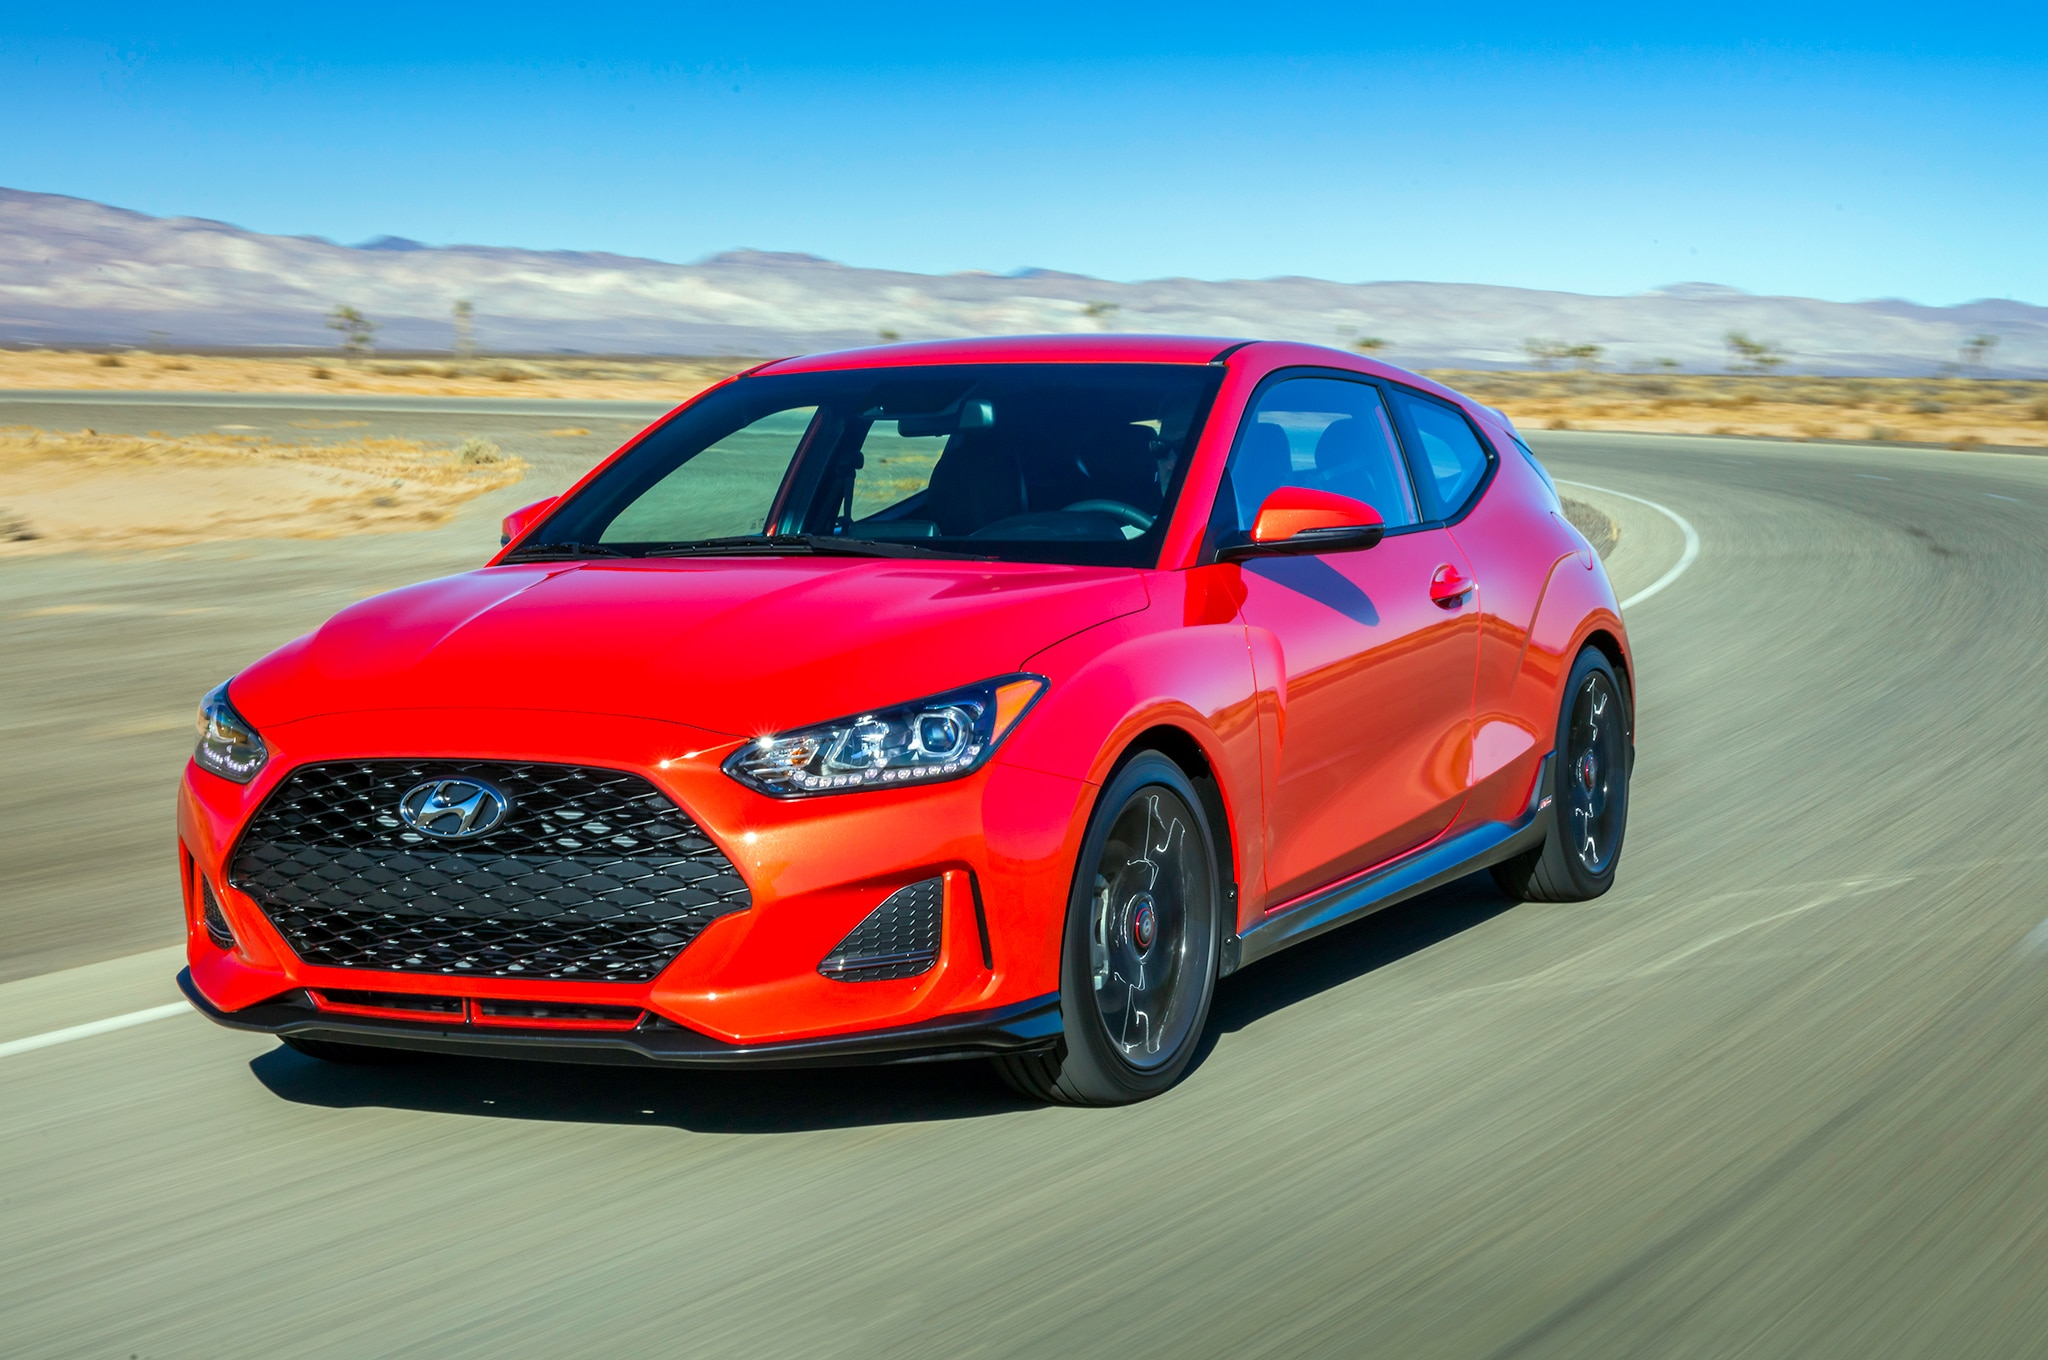 2019 Hyundai Veloster R Spec Front Three Quarter In Motion 04